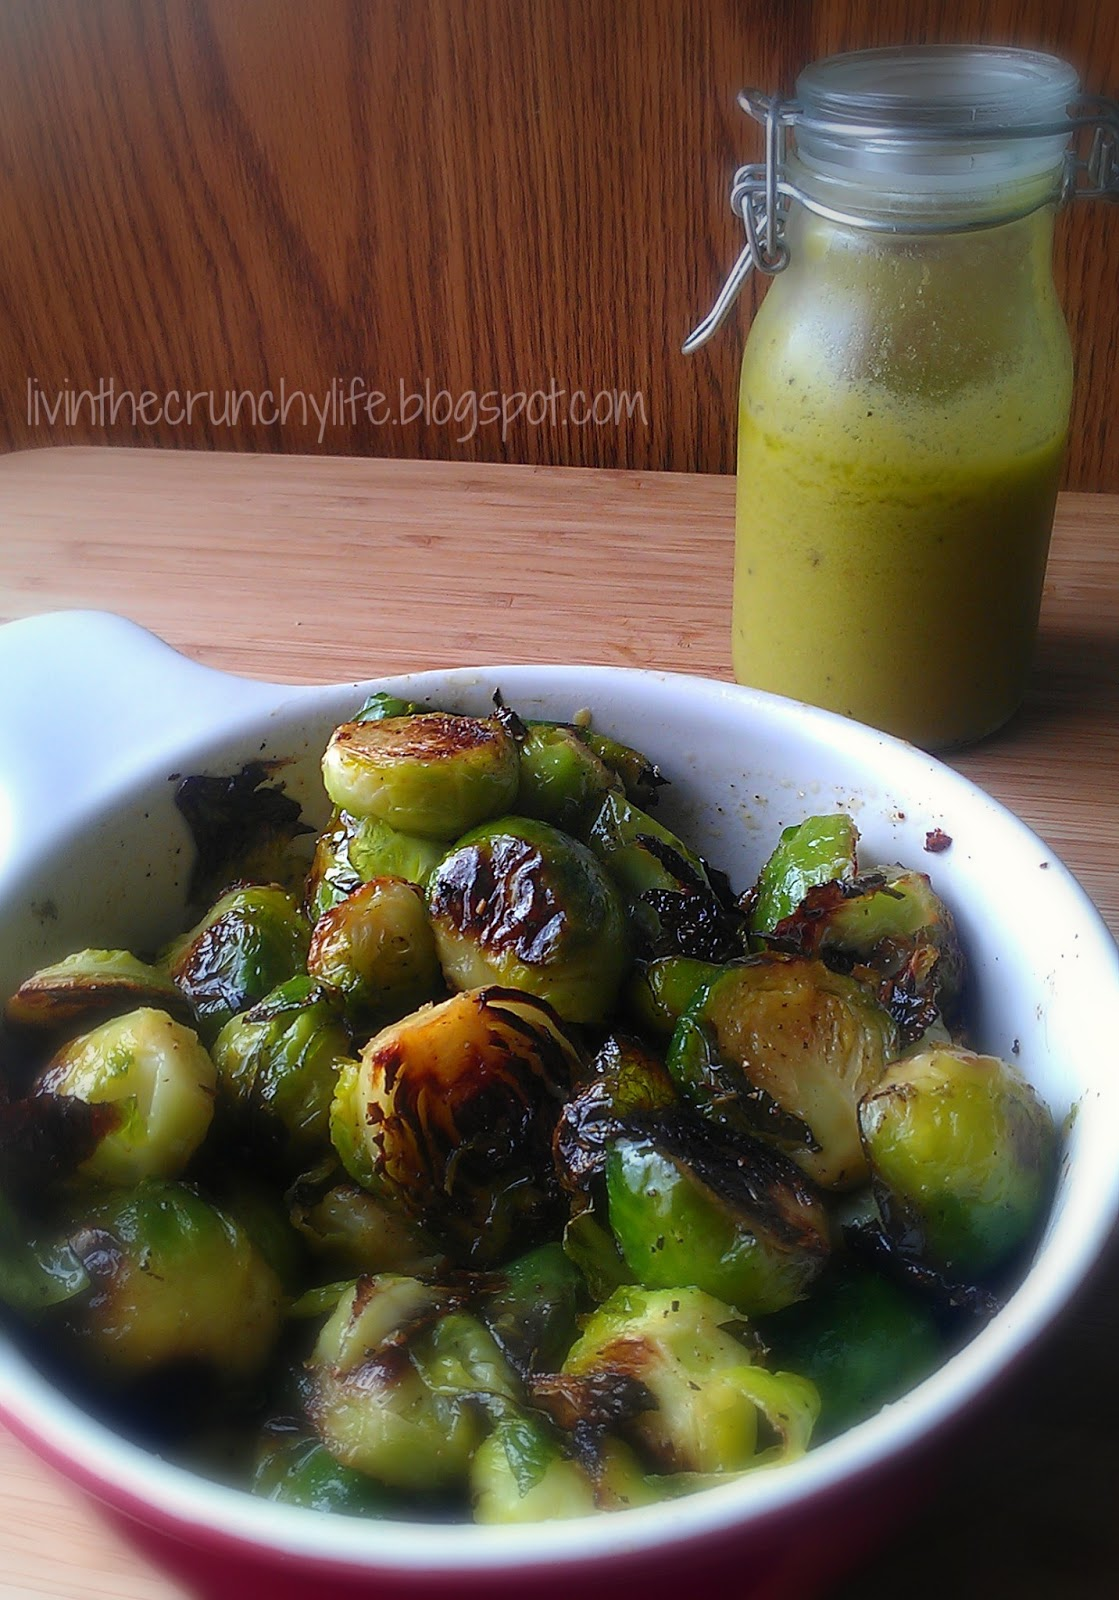 Roasted Brussels Sprouts with Meyer Lemon Vinaigrette